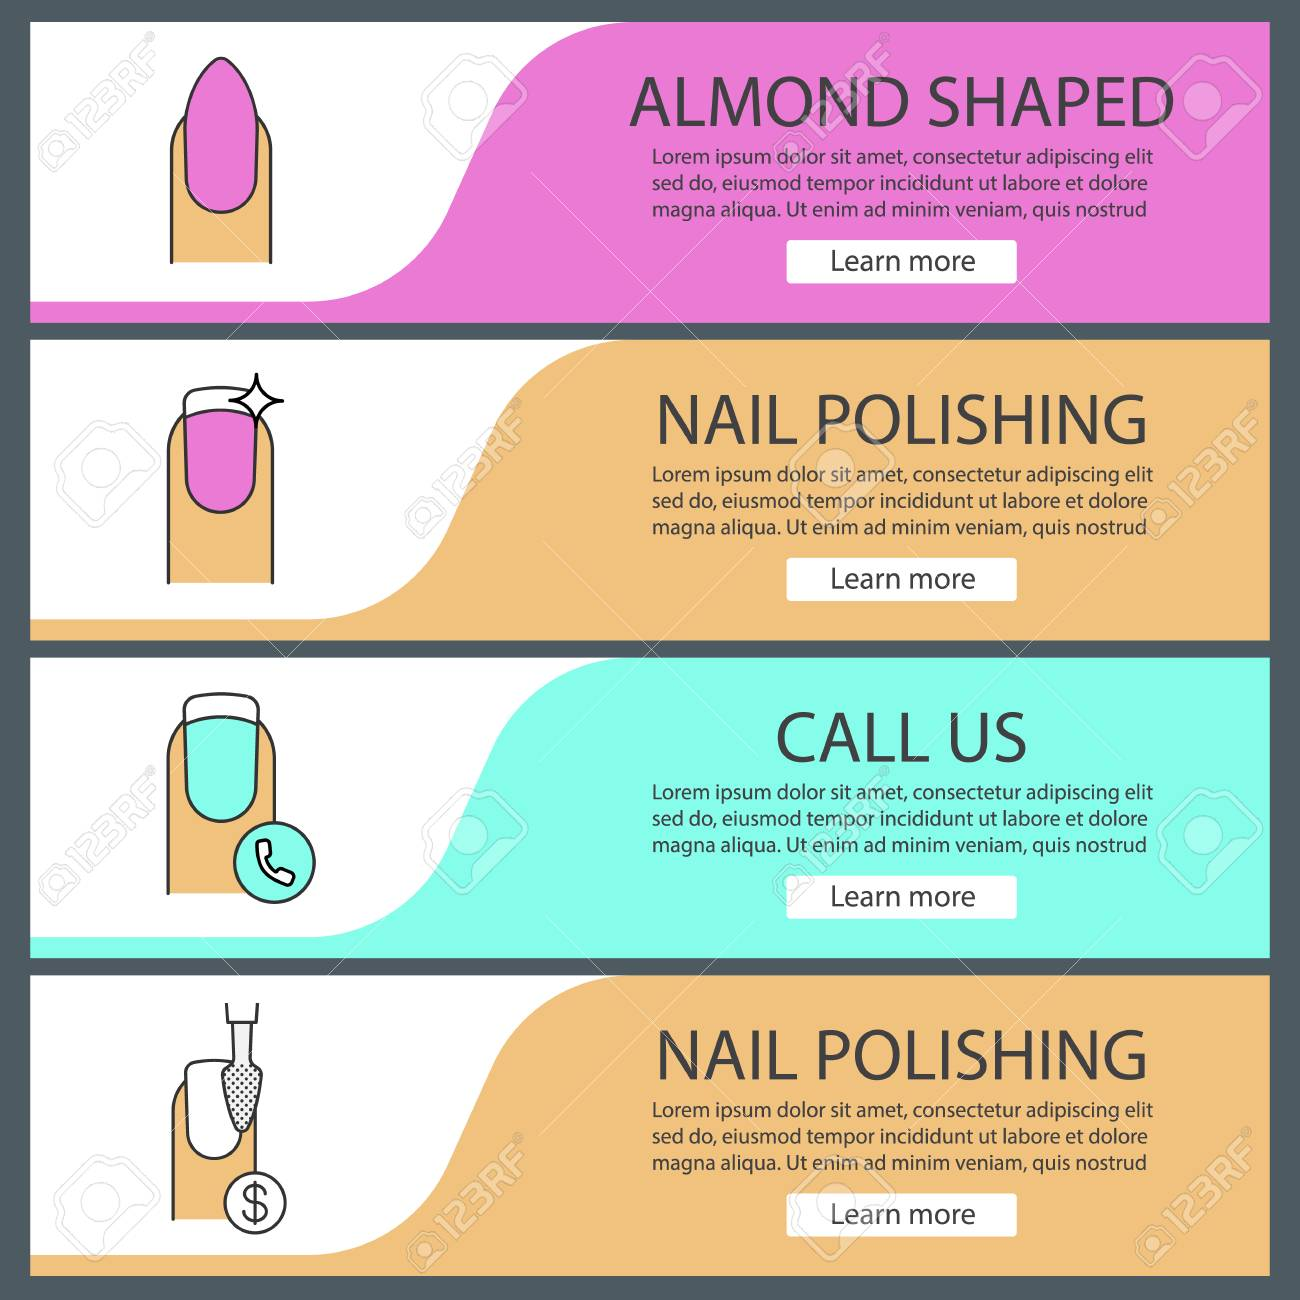 Manicure Web Banner Templates Set Almond Shaped Manicure Nail